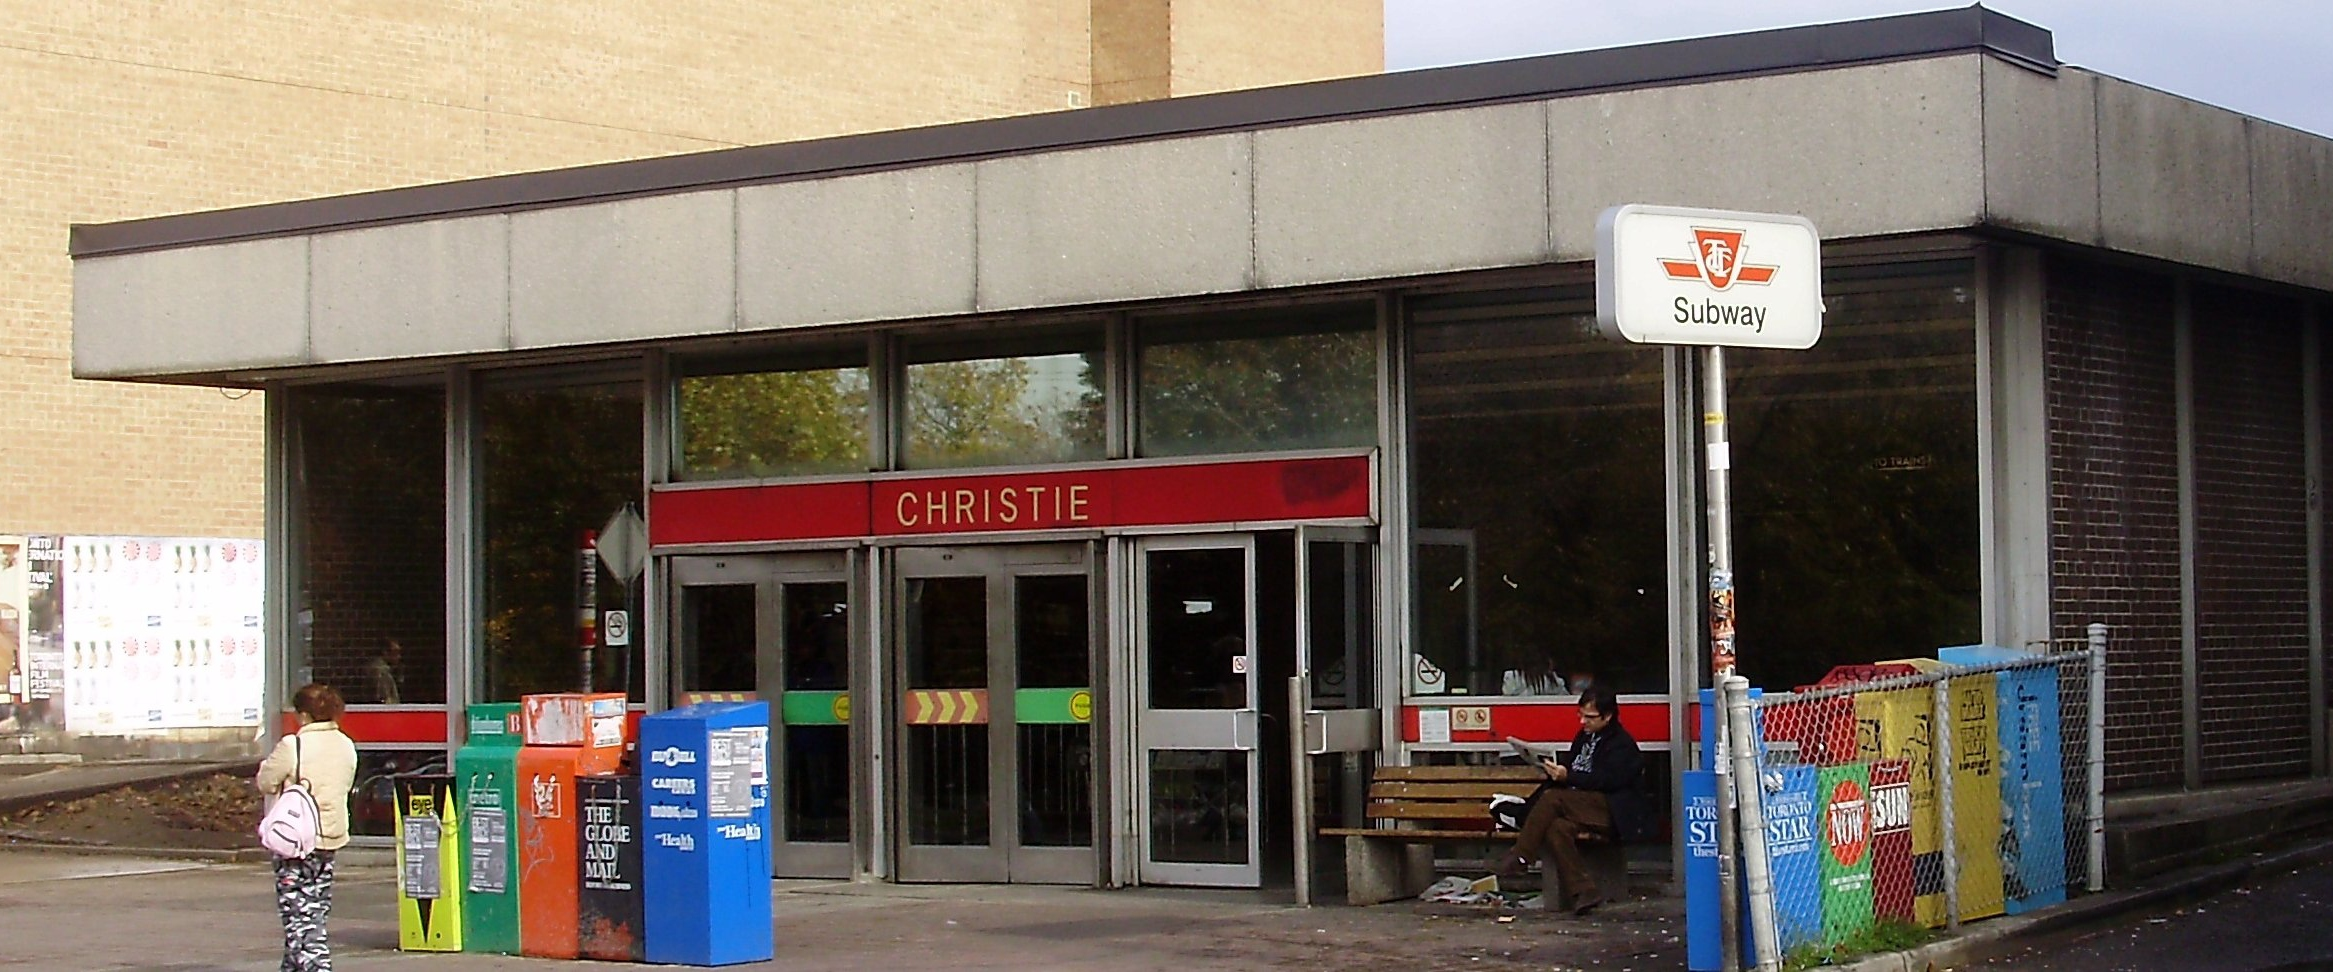 Renovation - TTC clip.jpg English: Entrance to Christie subway station in Toronto Date 2 February 2012 Source File:Christie Station Post Renovation